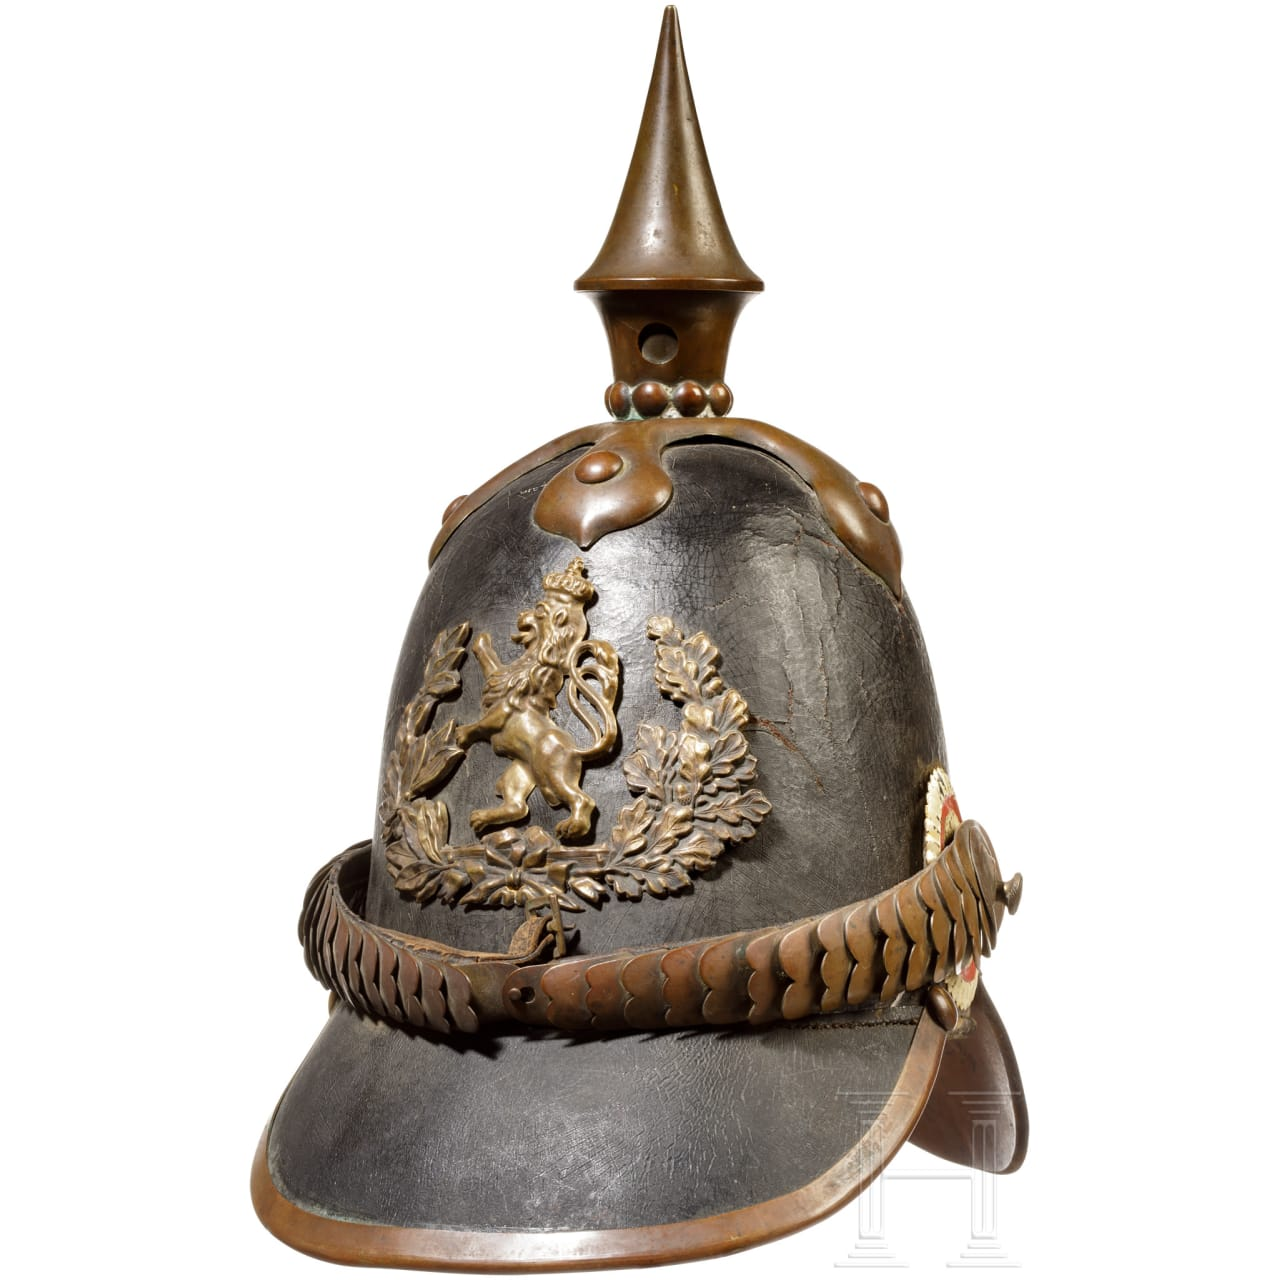 A model 1842 enlisted man spike helmet for infantry